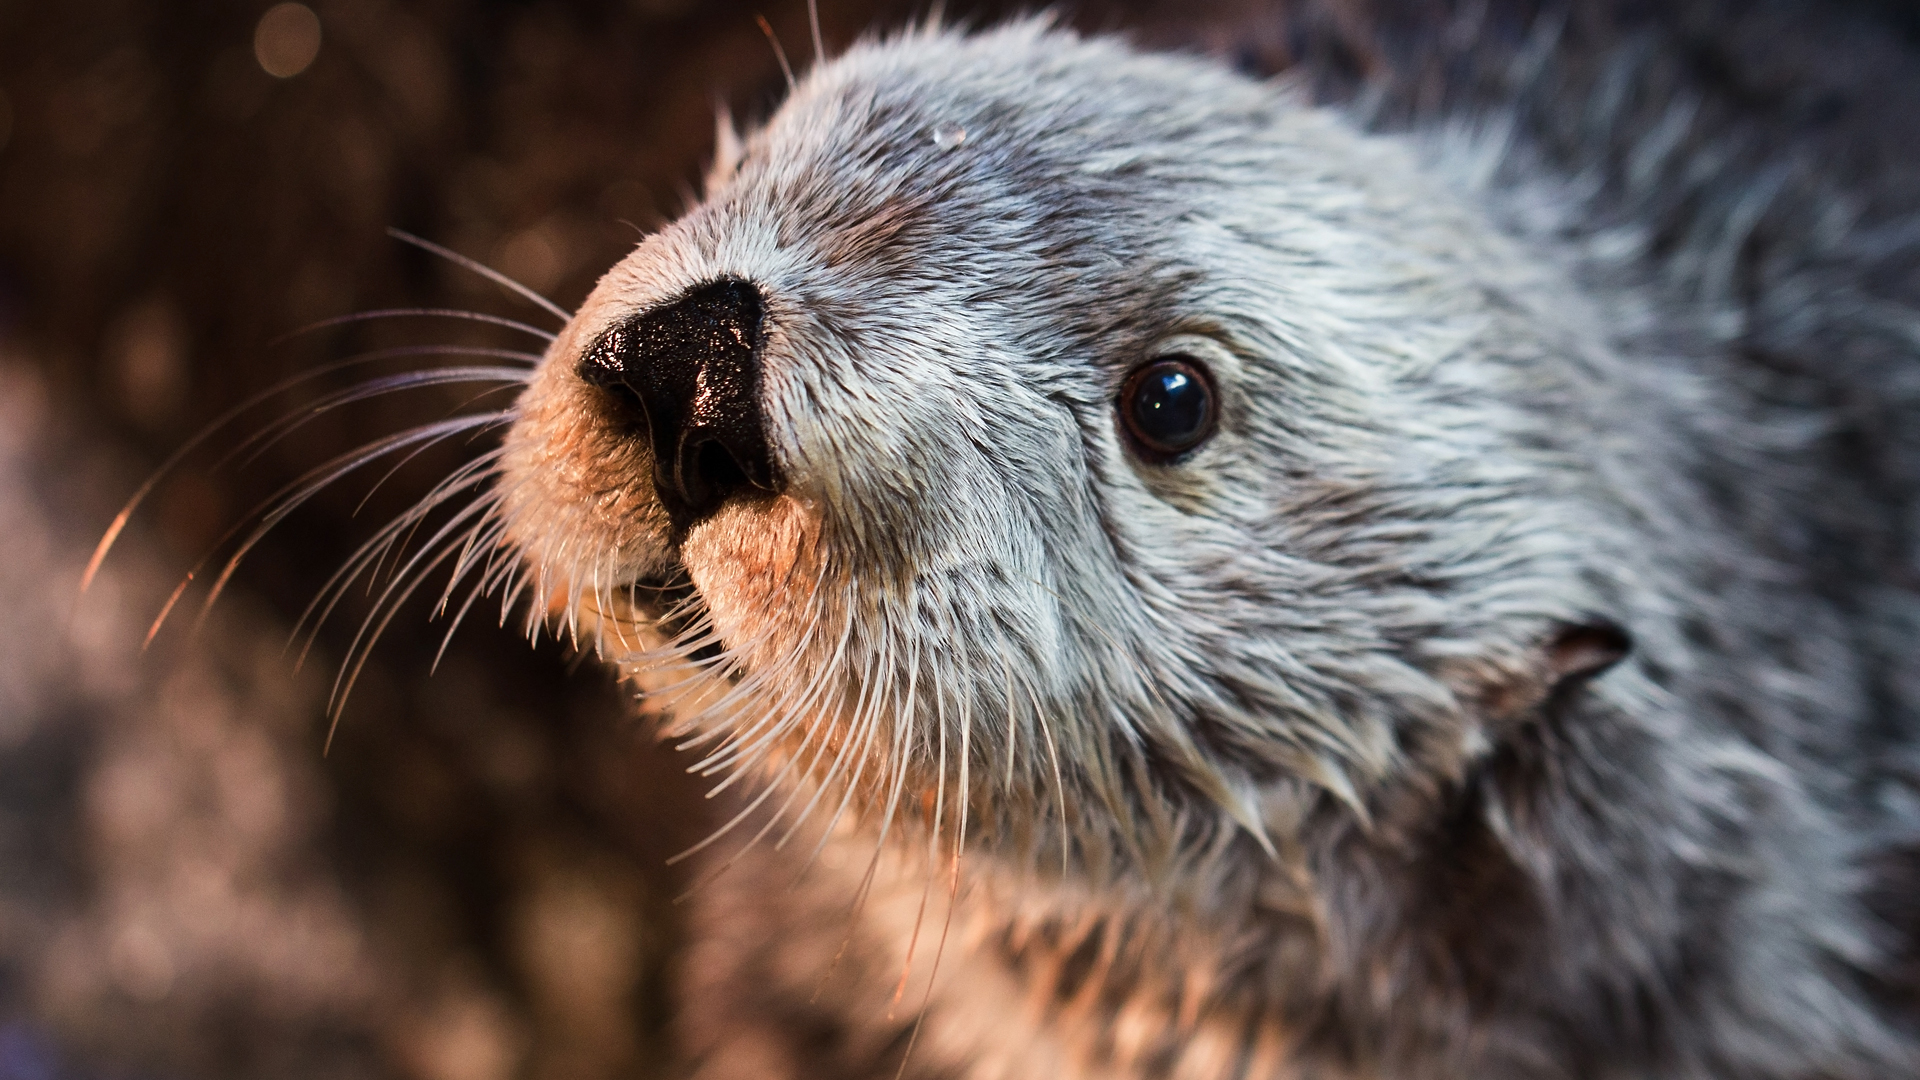 Sea otter Charlie is seen in a photo provided by the Aquarium of the Pacific. (Credit: Robin Riggs)